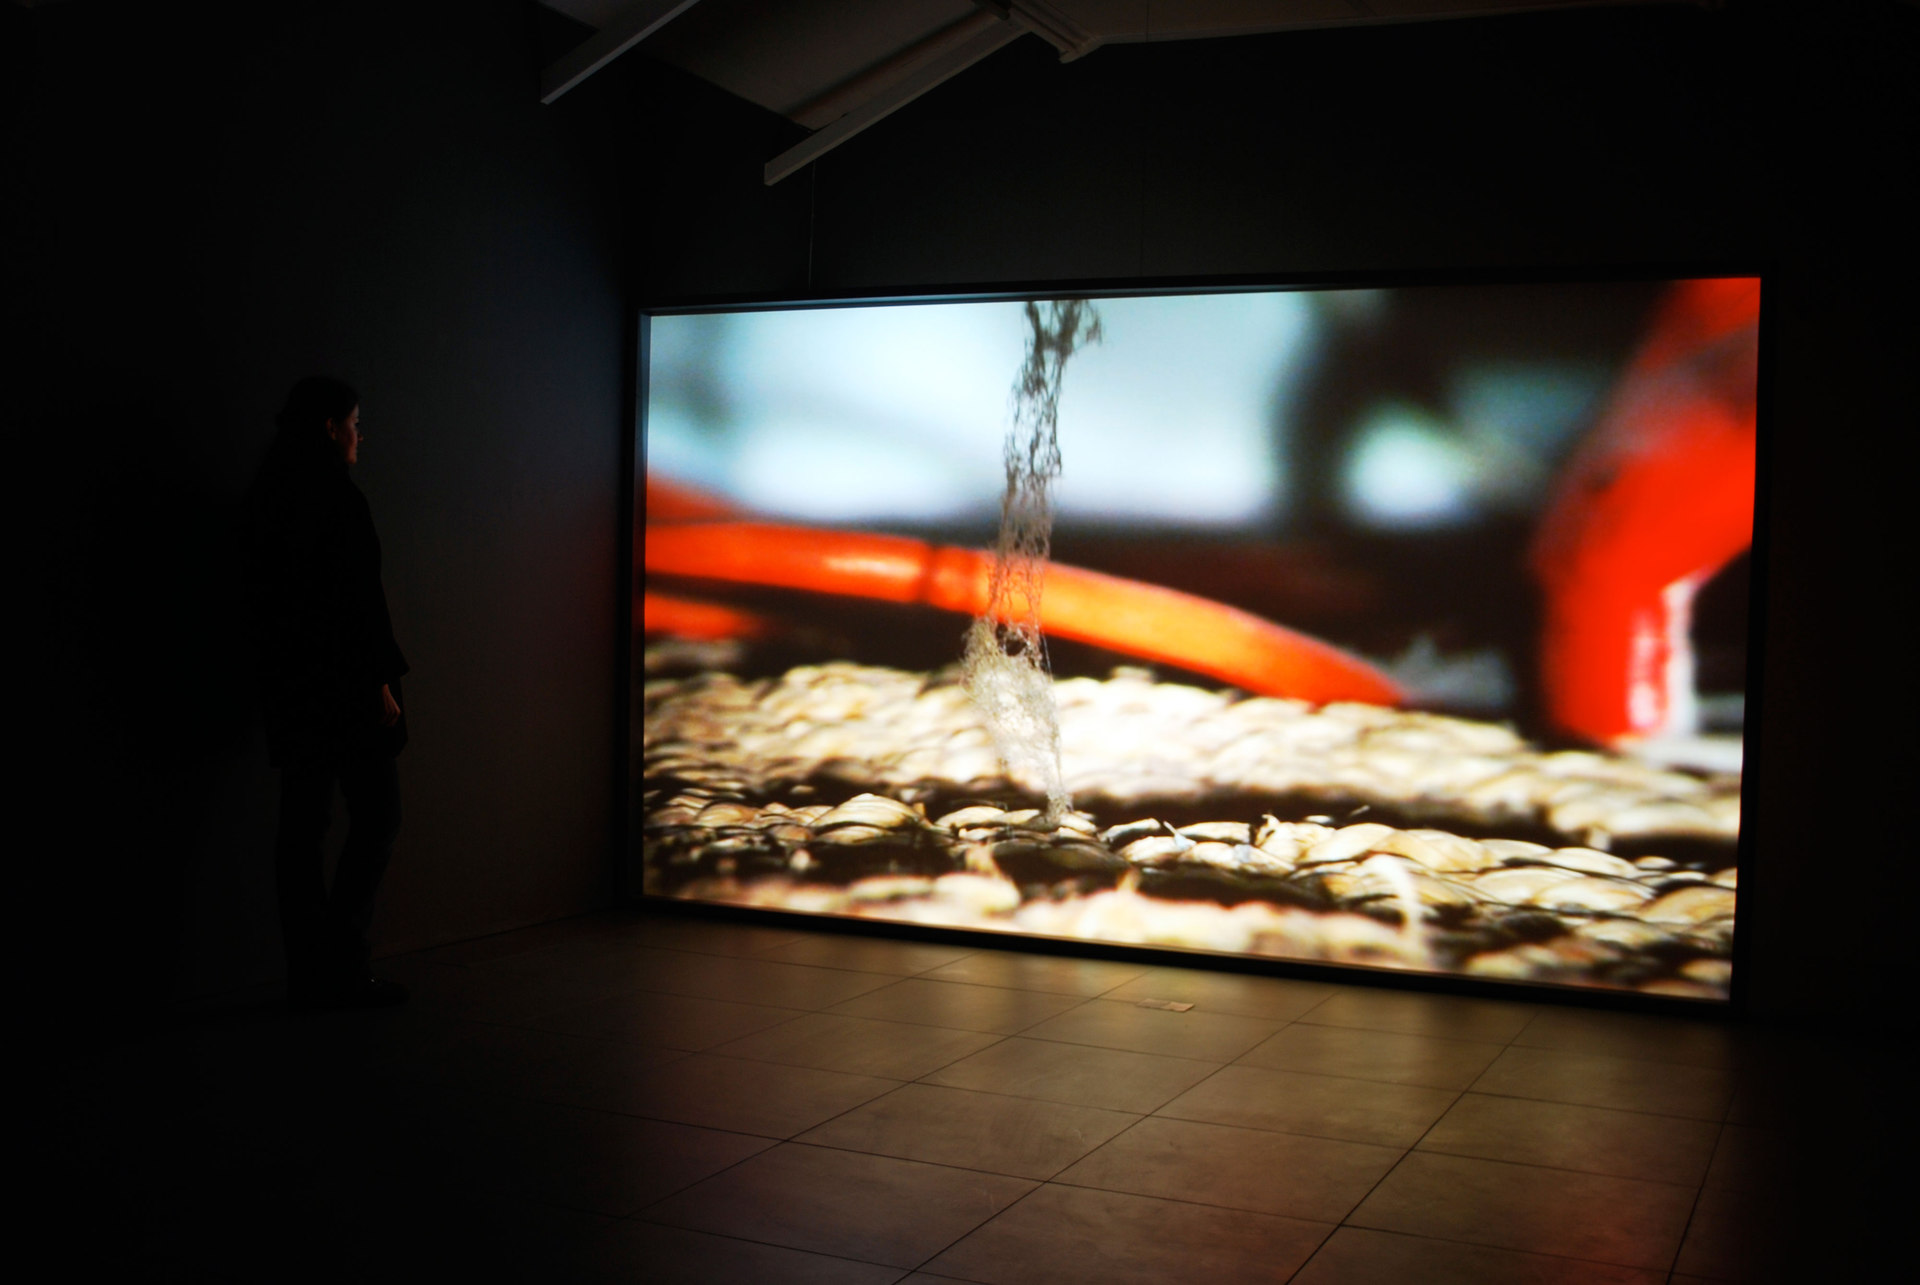 Emma Hart, JAM, 'LOST', 2009-2011, digital projection, Cell Project Space